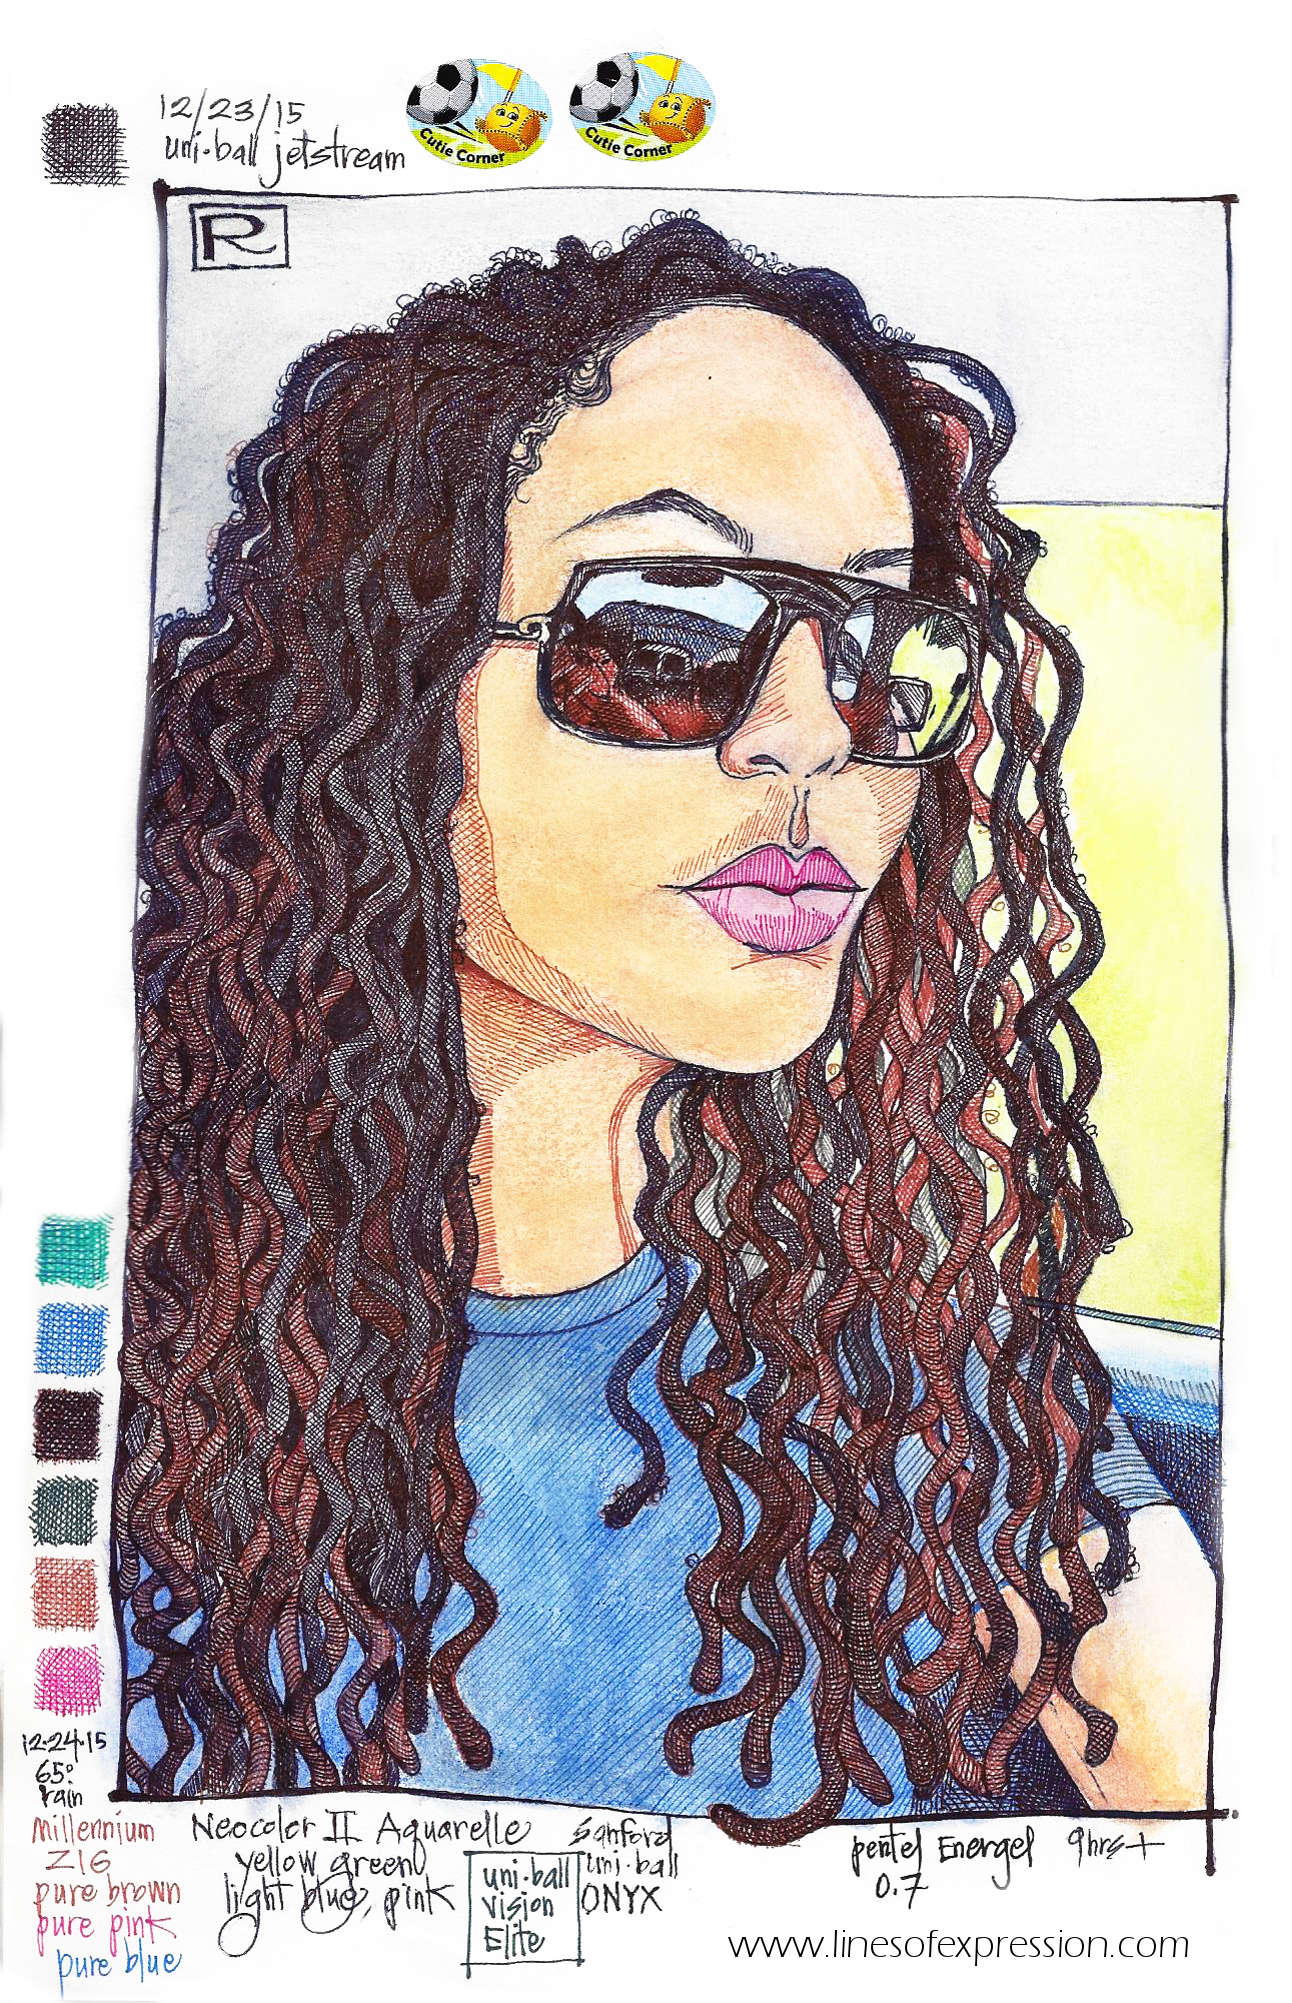 Ink and water soluble crayon sketchbook drawing by Rebecca Payne. Natural hair drawing inspired by a photo of a woman wearing sunglasses and locked hair.